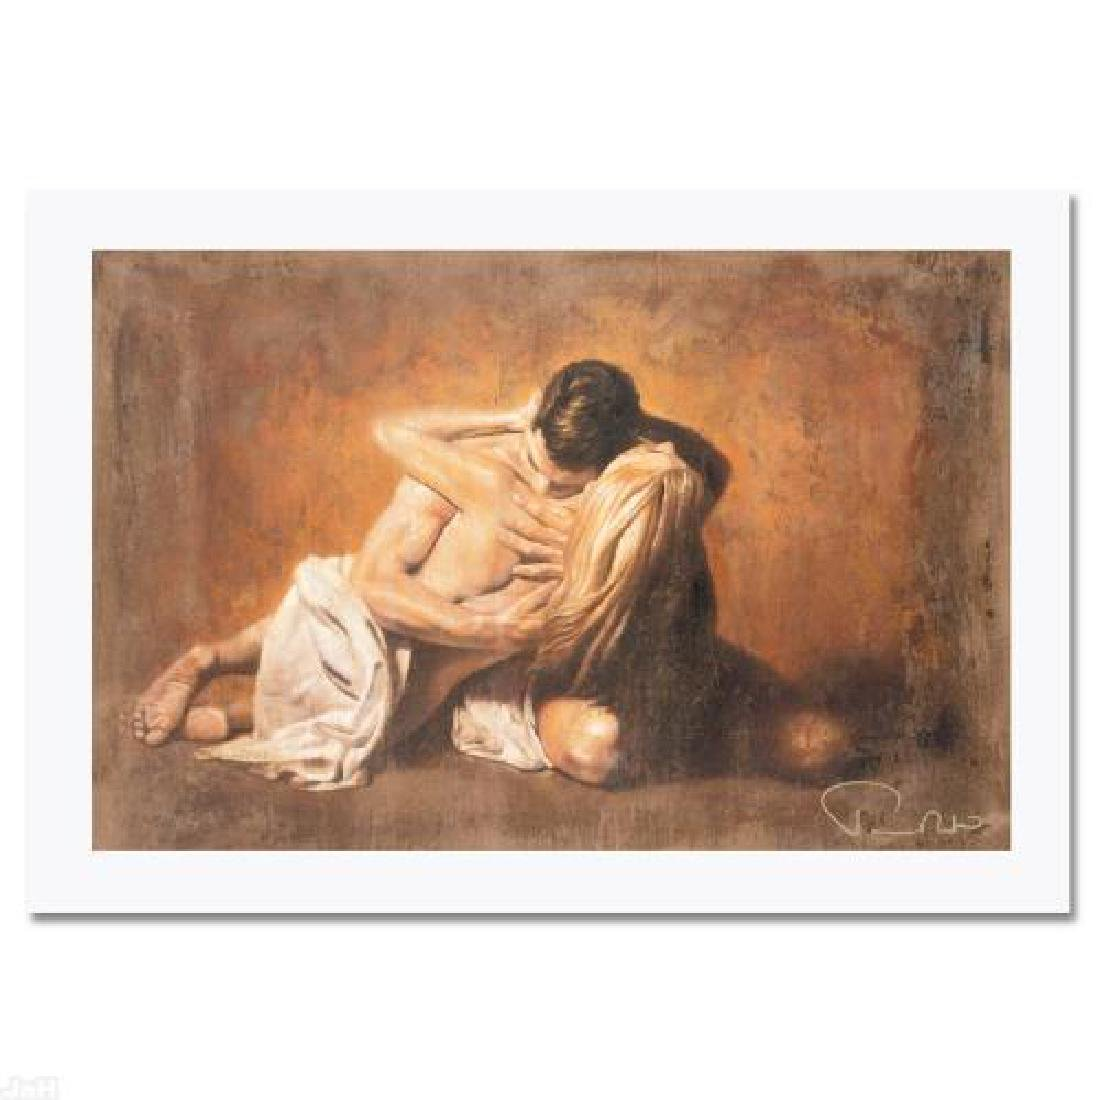 Incipesso LIMITED EDITION Giclee on Canvas by Vatican